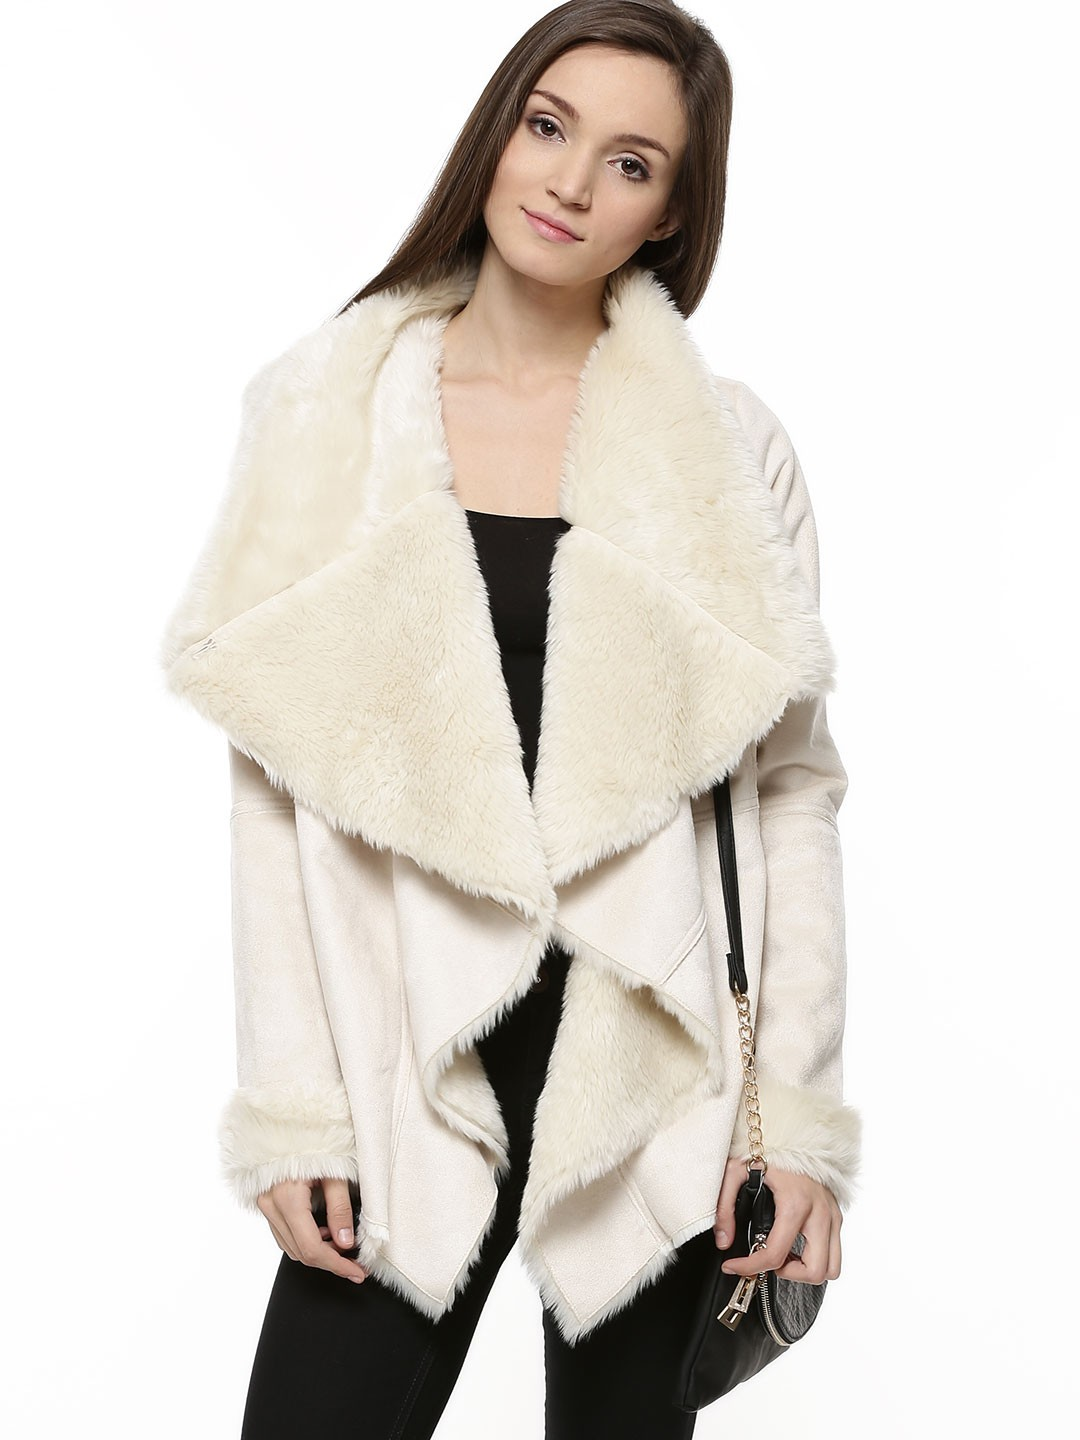 Buy OASIS Shearling Drape Jacket For Women - Women's Ivory Jackets ...